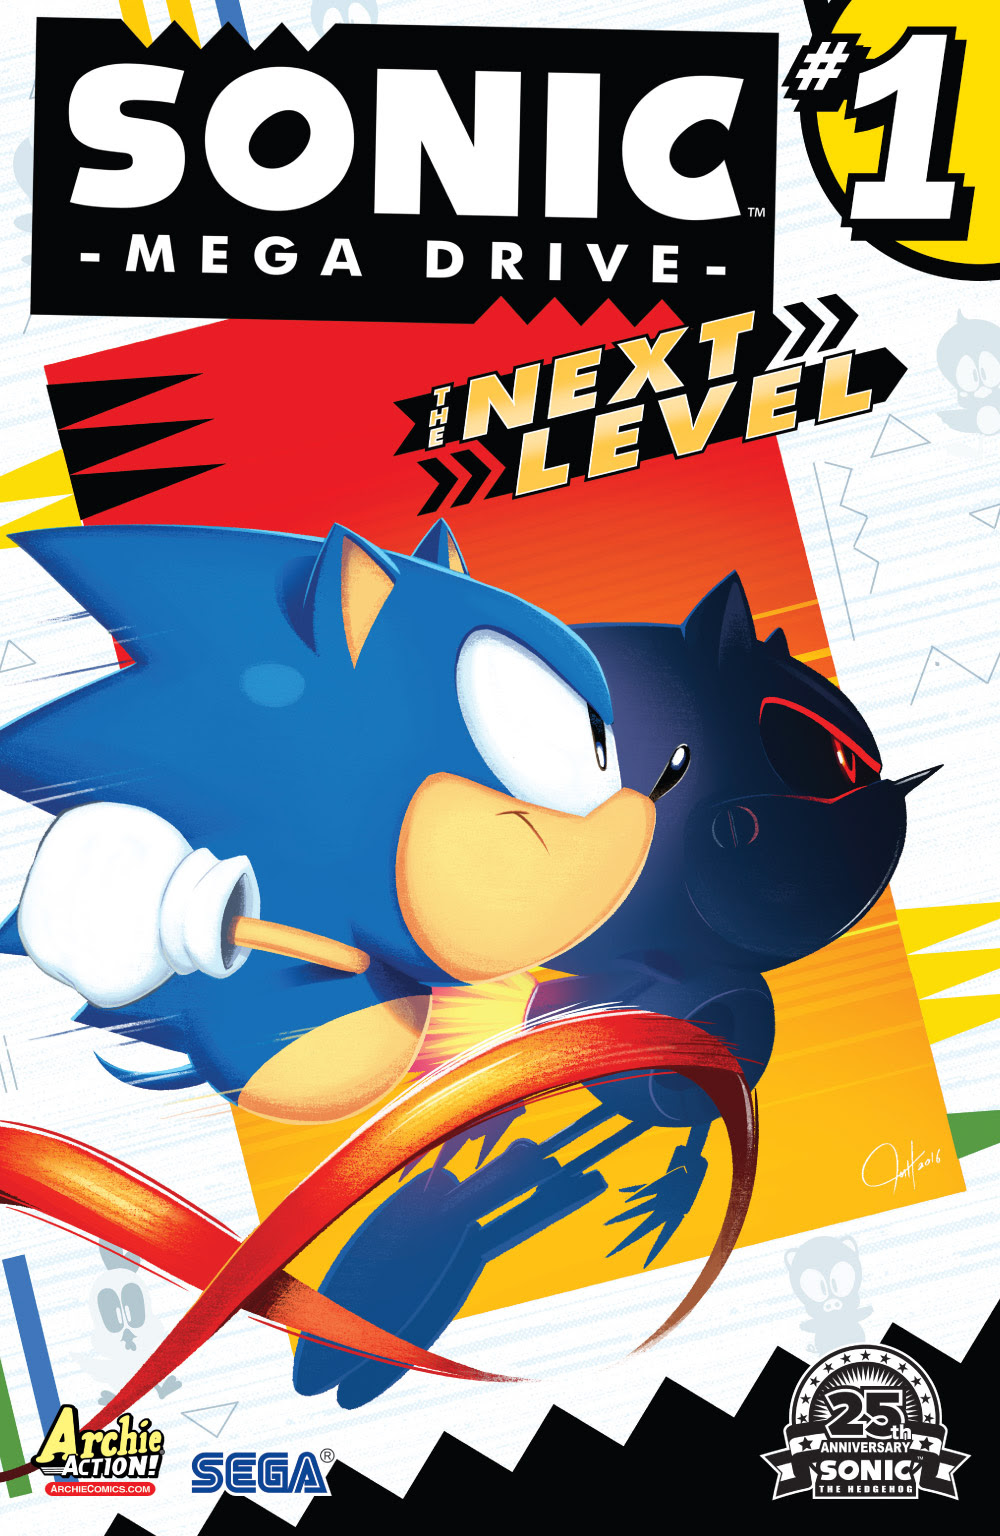 Sonic Mega Drive - The Next Level cover